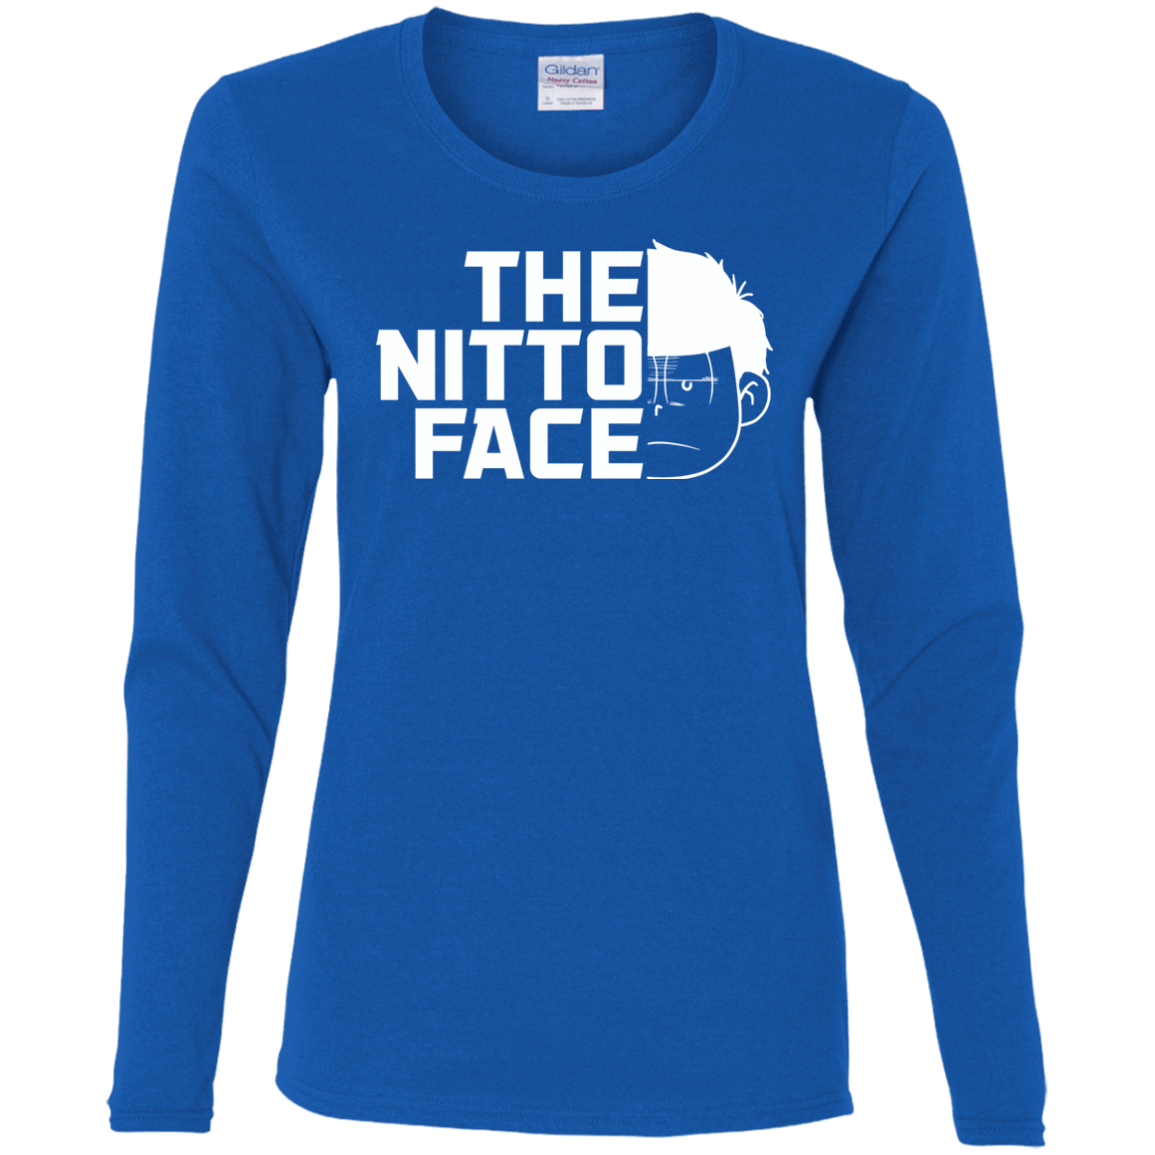 T-Shirts Royal / S The Nitto Face Women's Long Sleeve T-Shirt